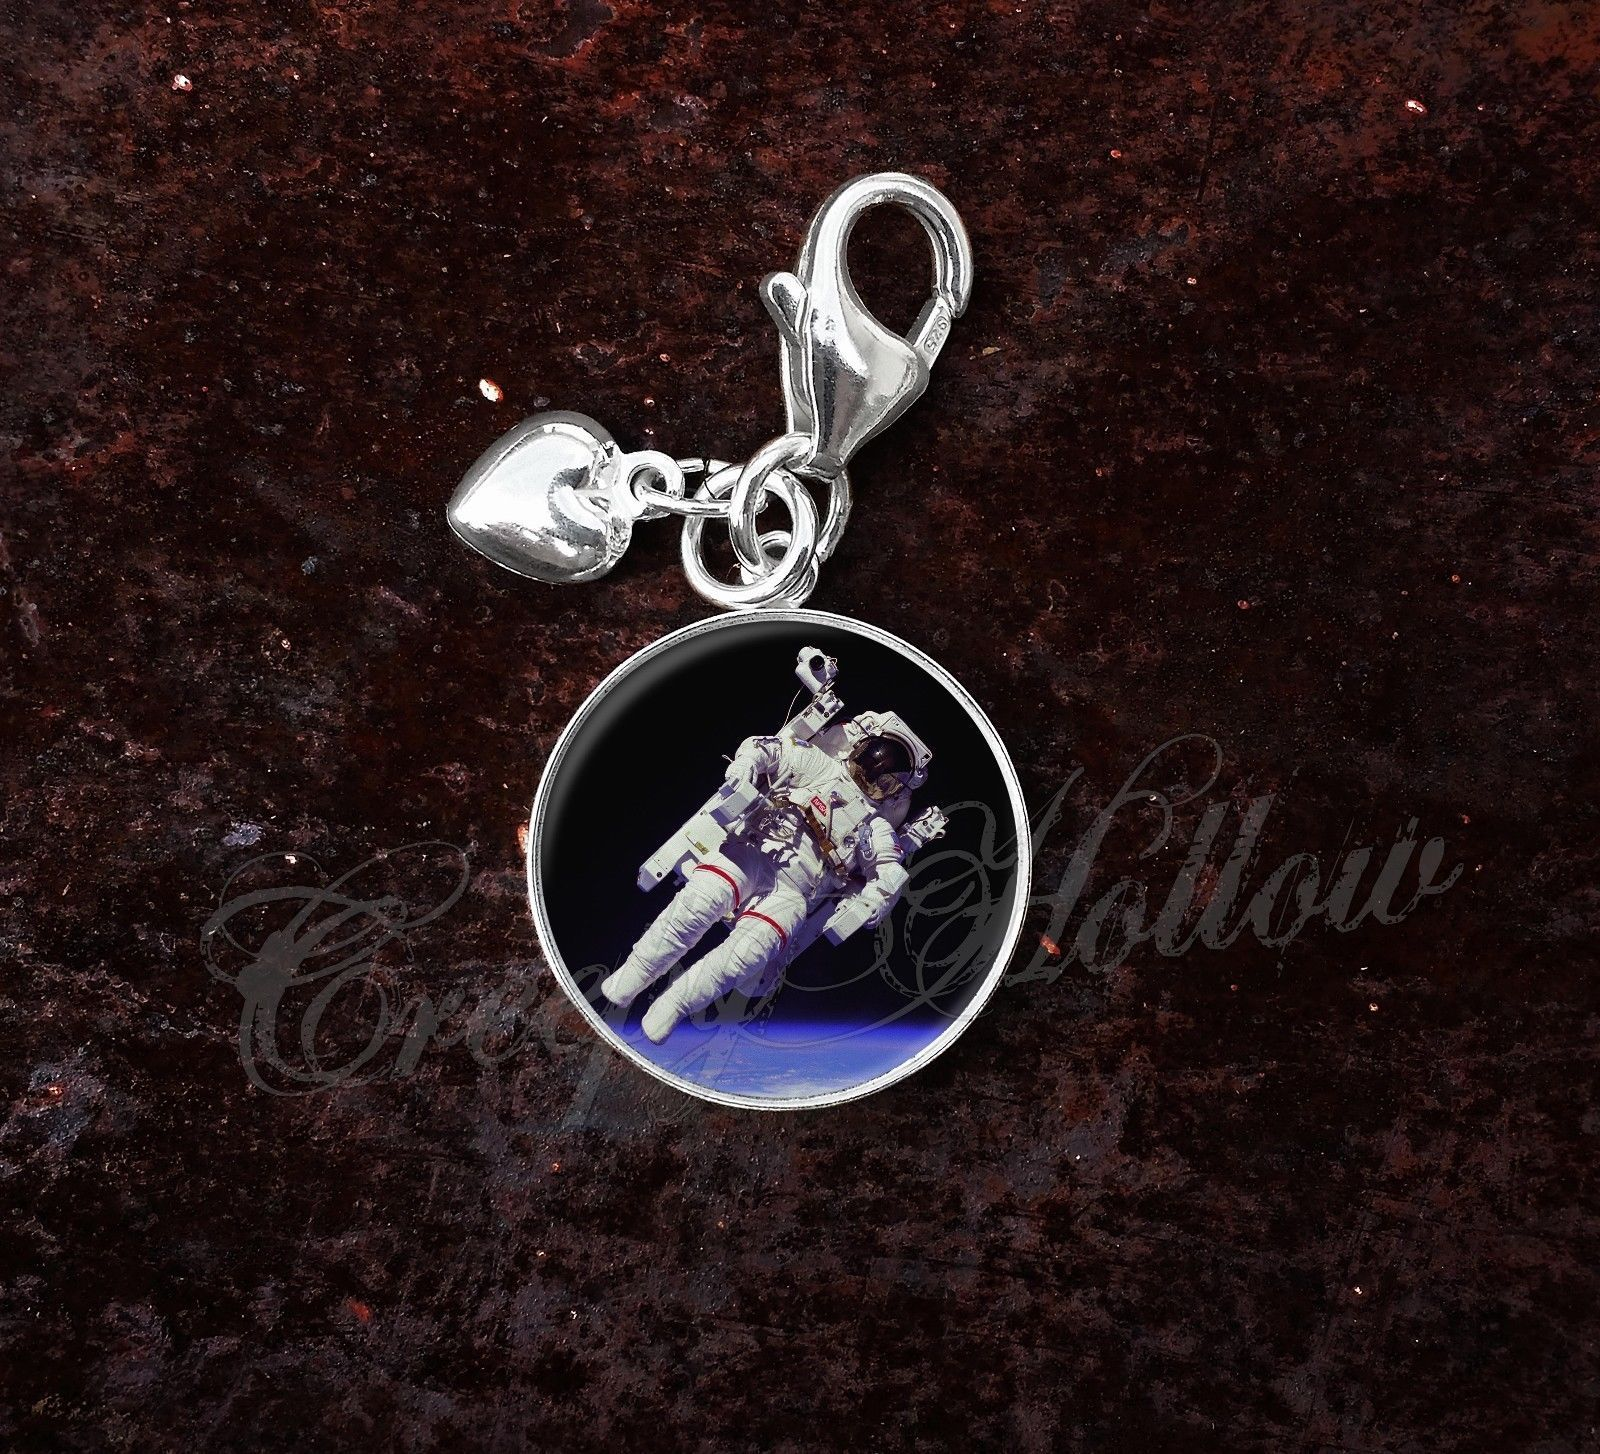 Primary image for 925 Sterling Silver Charm Astronaut Floating in Space Science Astronomy